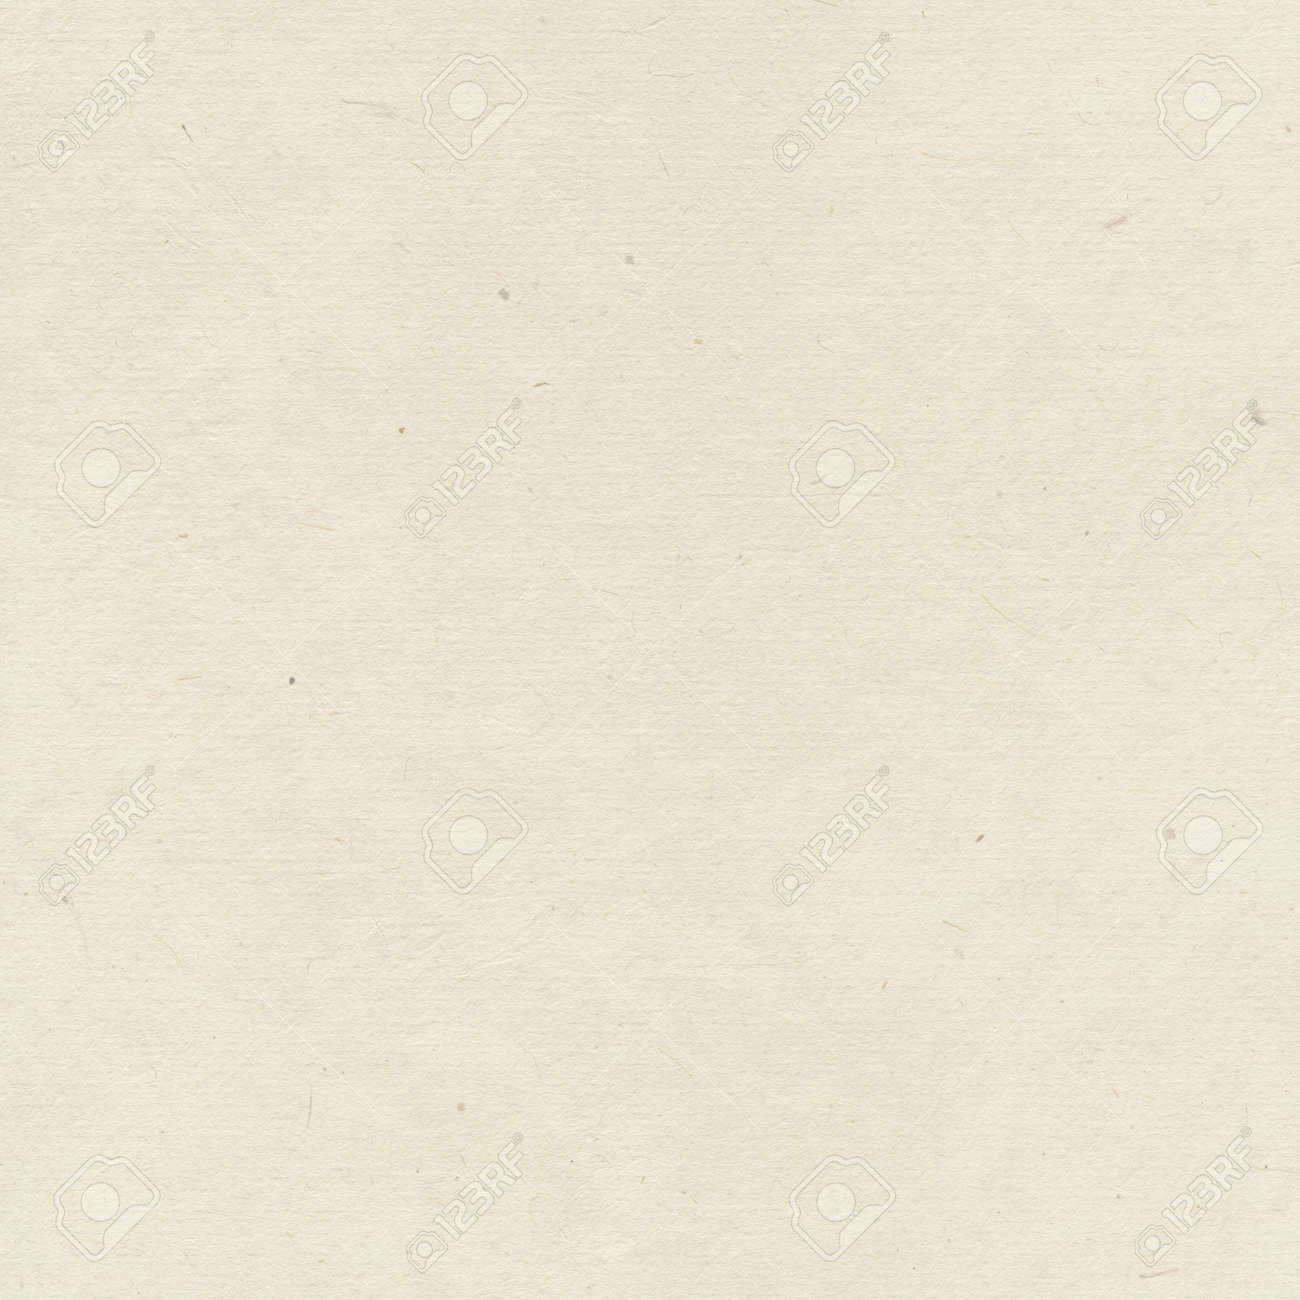 Recycled white paper texture background. Vintage wallpaper - 166915318